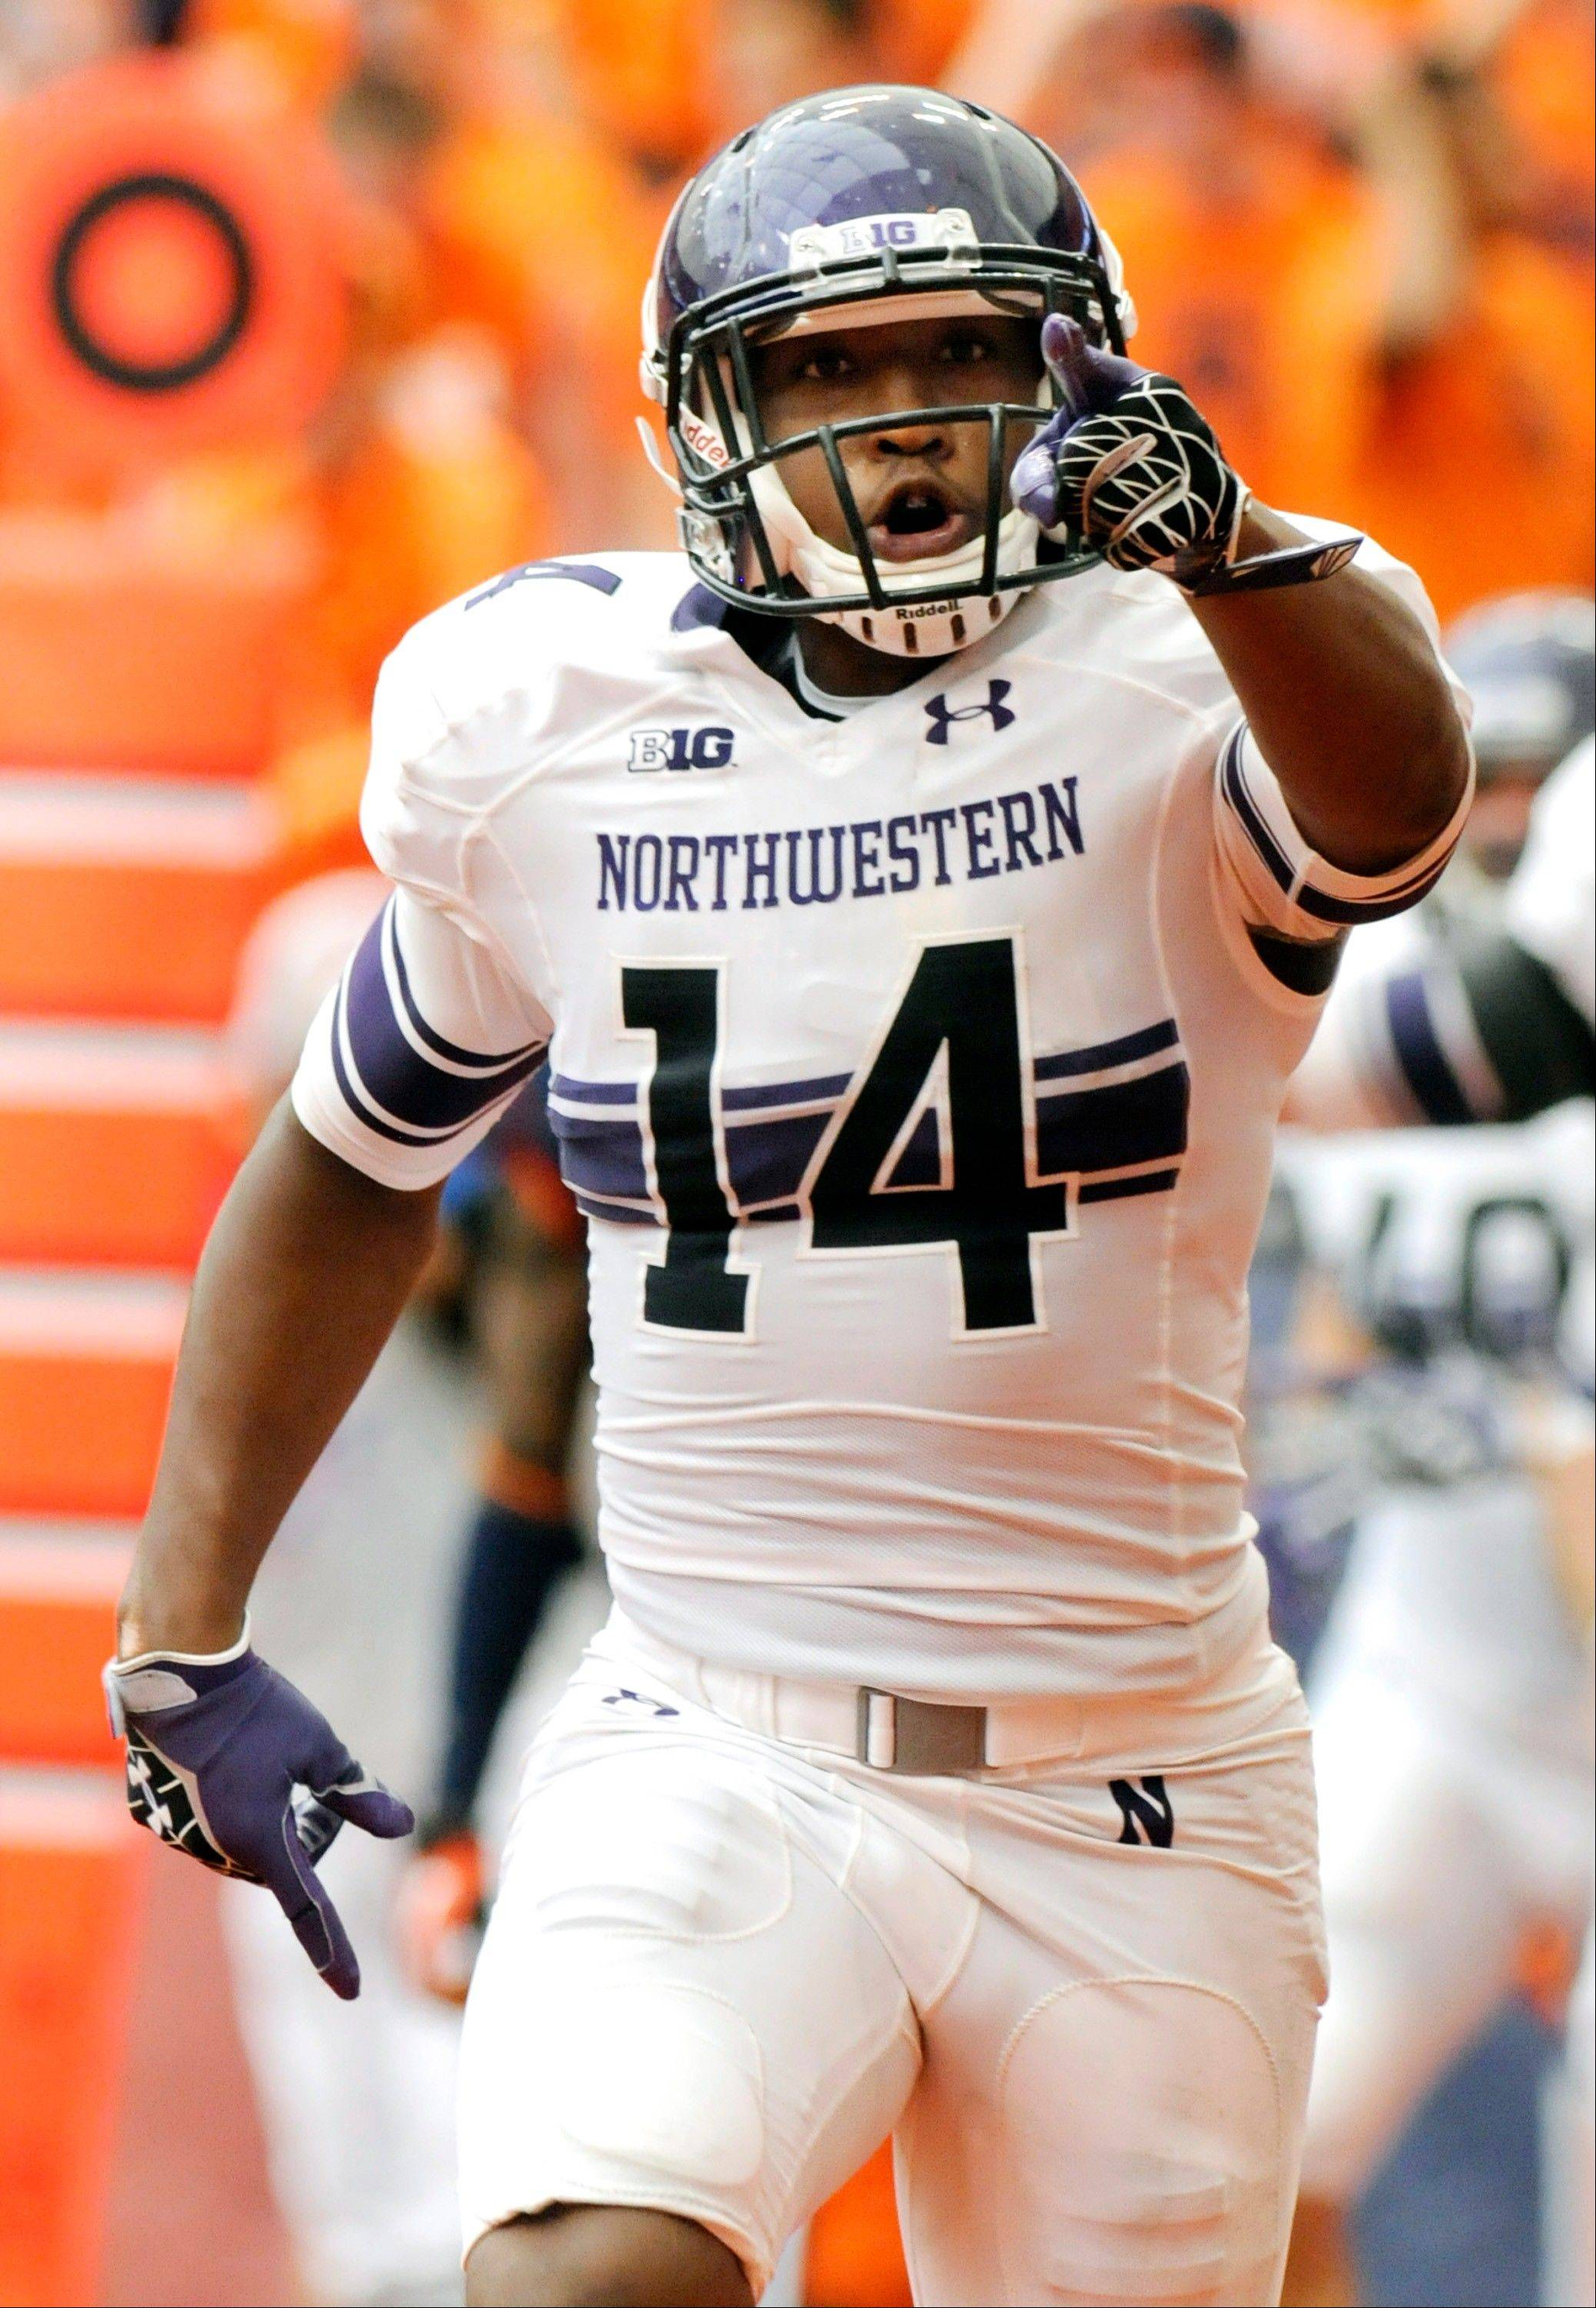 Northwestern's Christian Jones reacts after scoring against Syracuse during the second quarter of an NCAA college football game in Syracuse, N.Y., Saturday, Sept. 1, 2012.